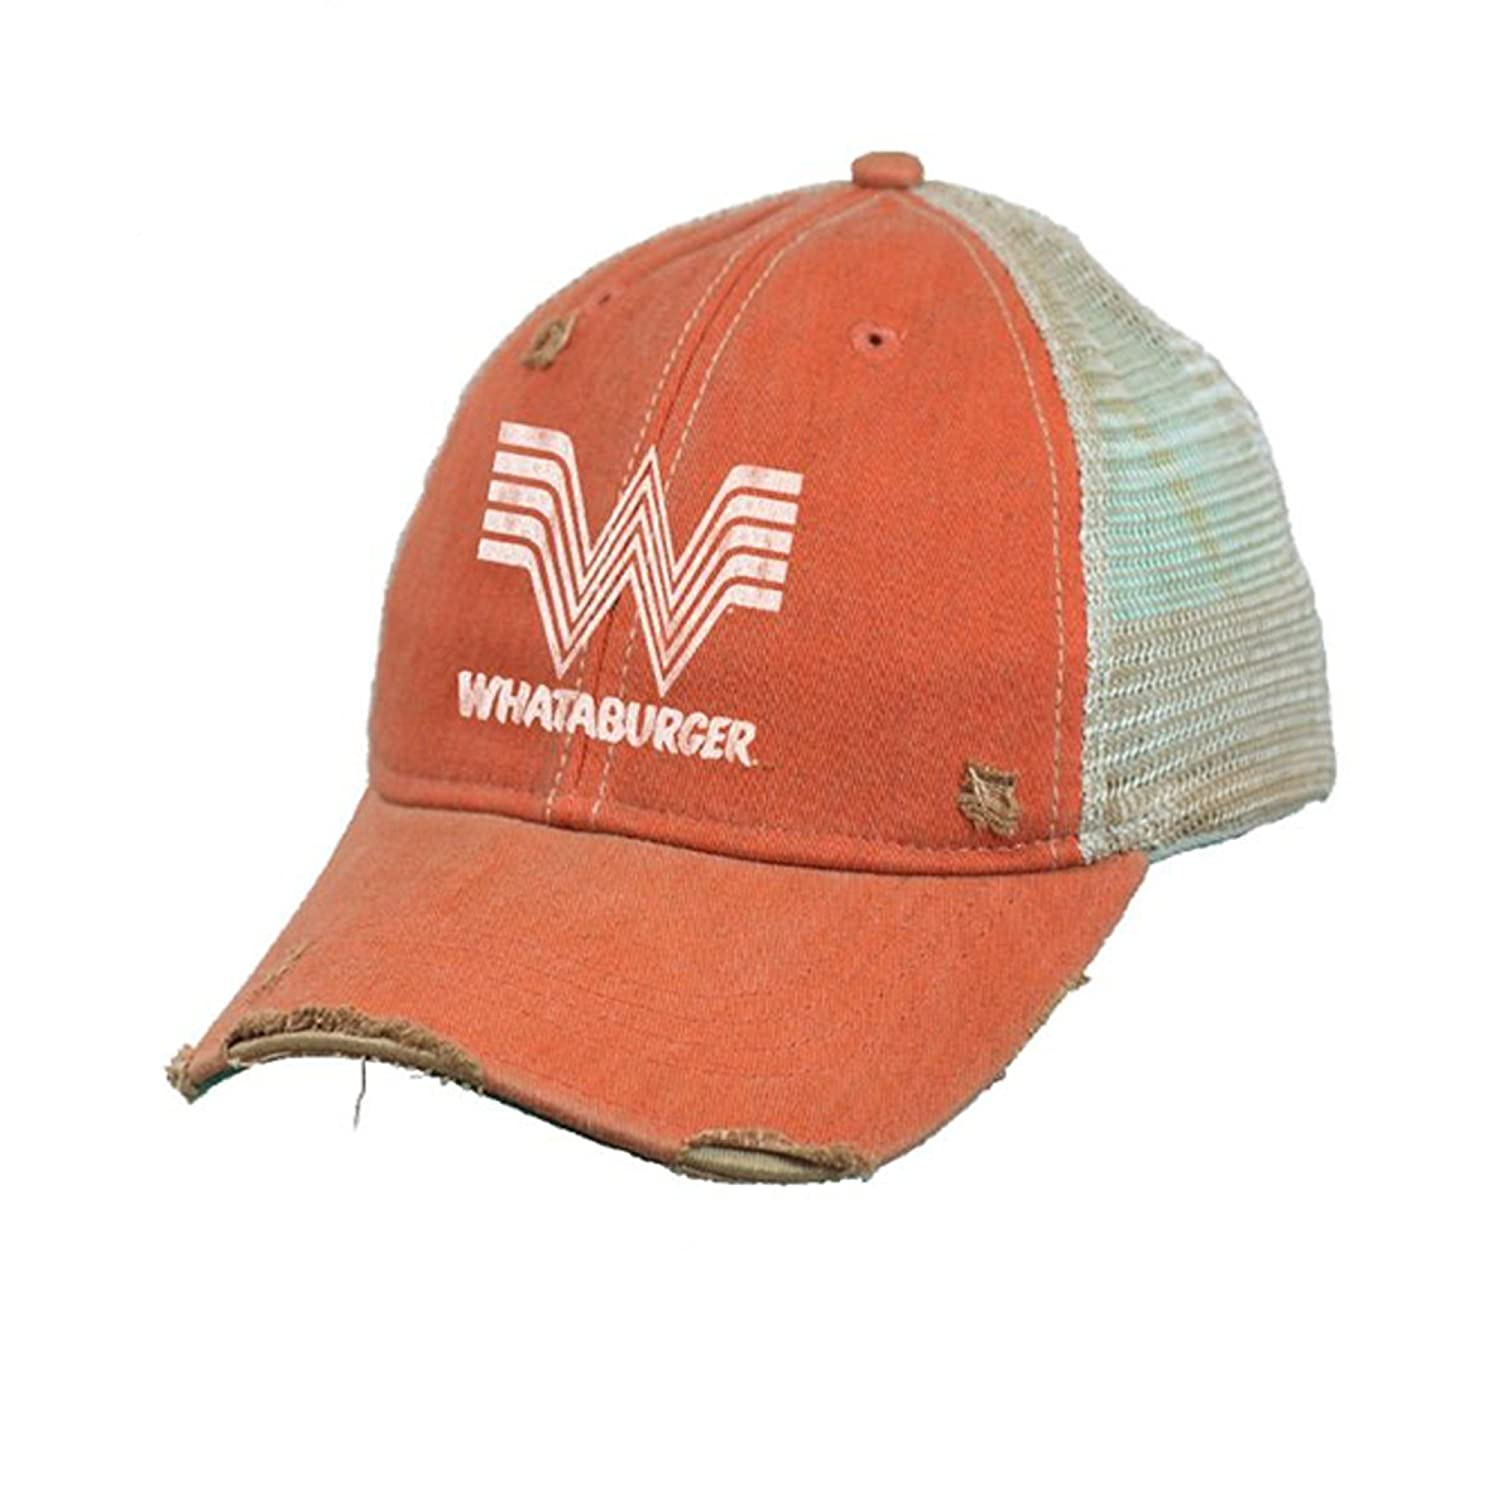 Original Retro Brand The Whataburger Hat